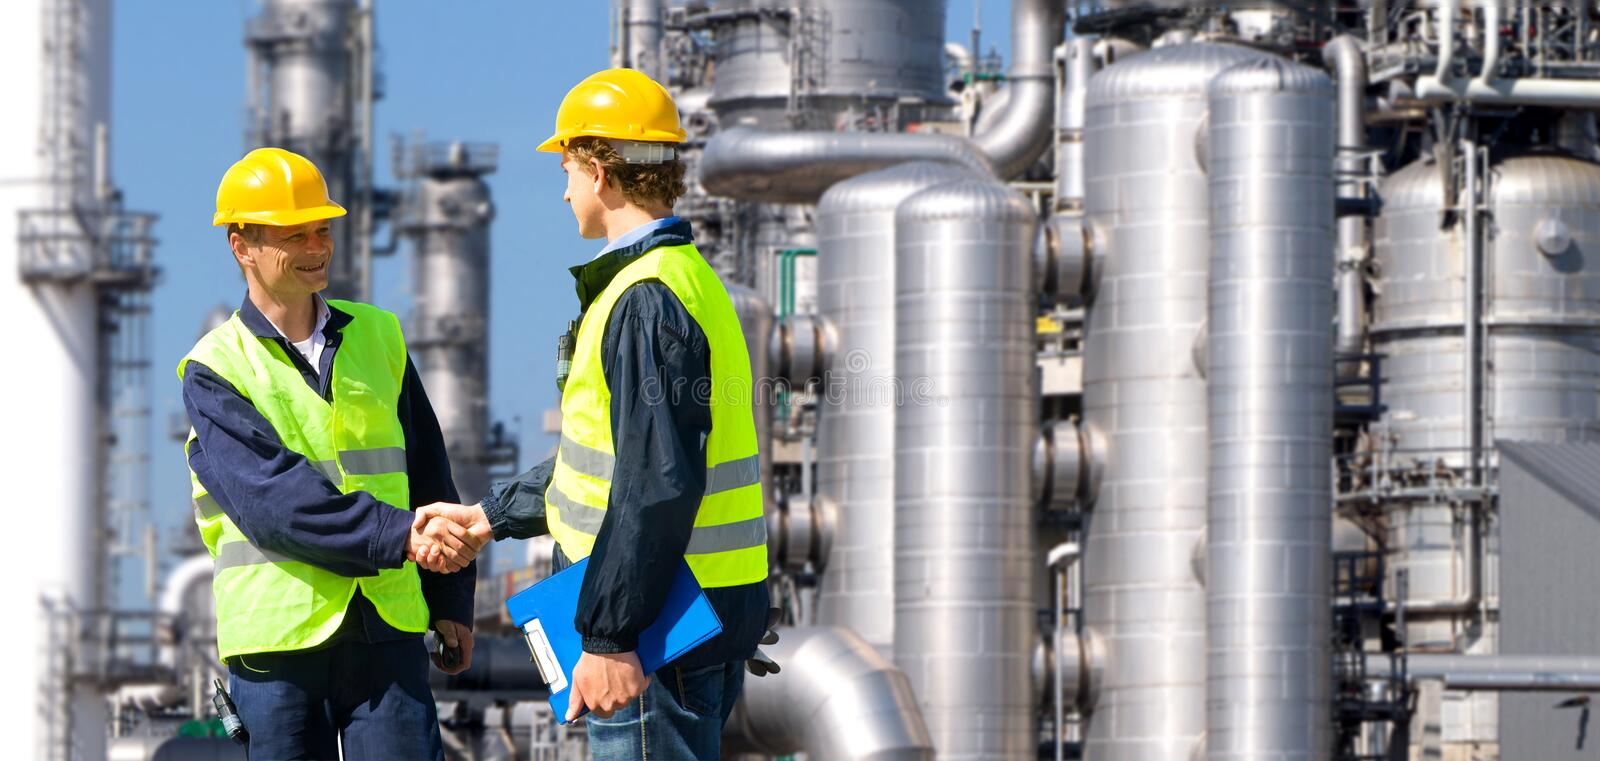 Petrochemical contractors royalty free stock photo